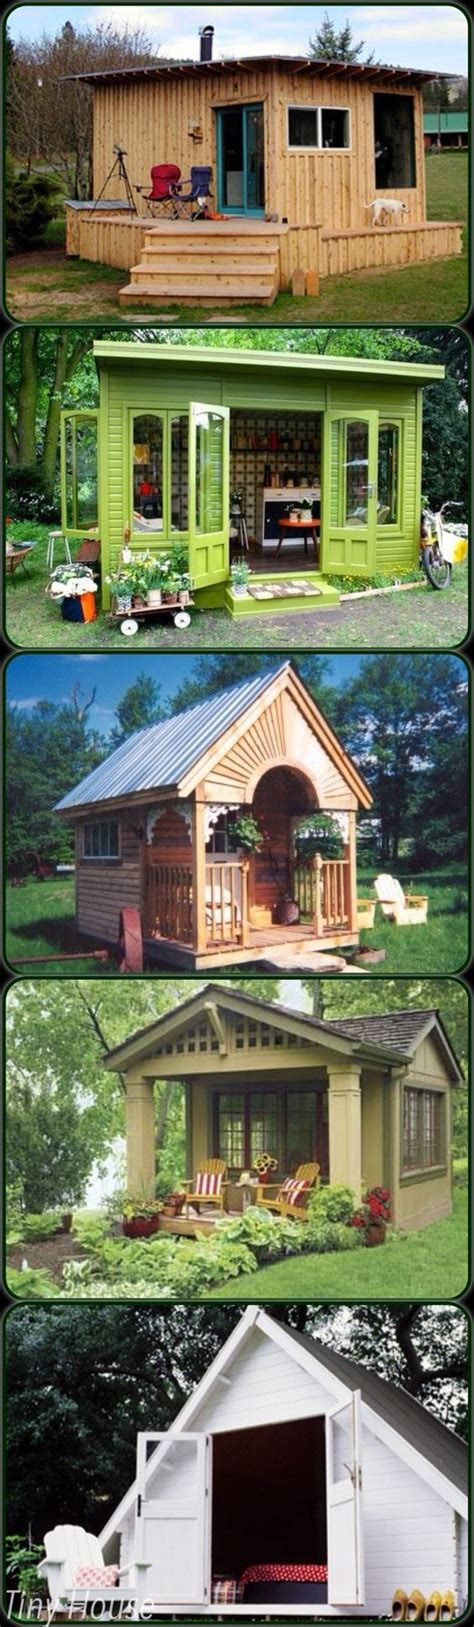 tiny house in backyard tiny house guest house ideas we plan to buy and build a place for family in the backyard